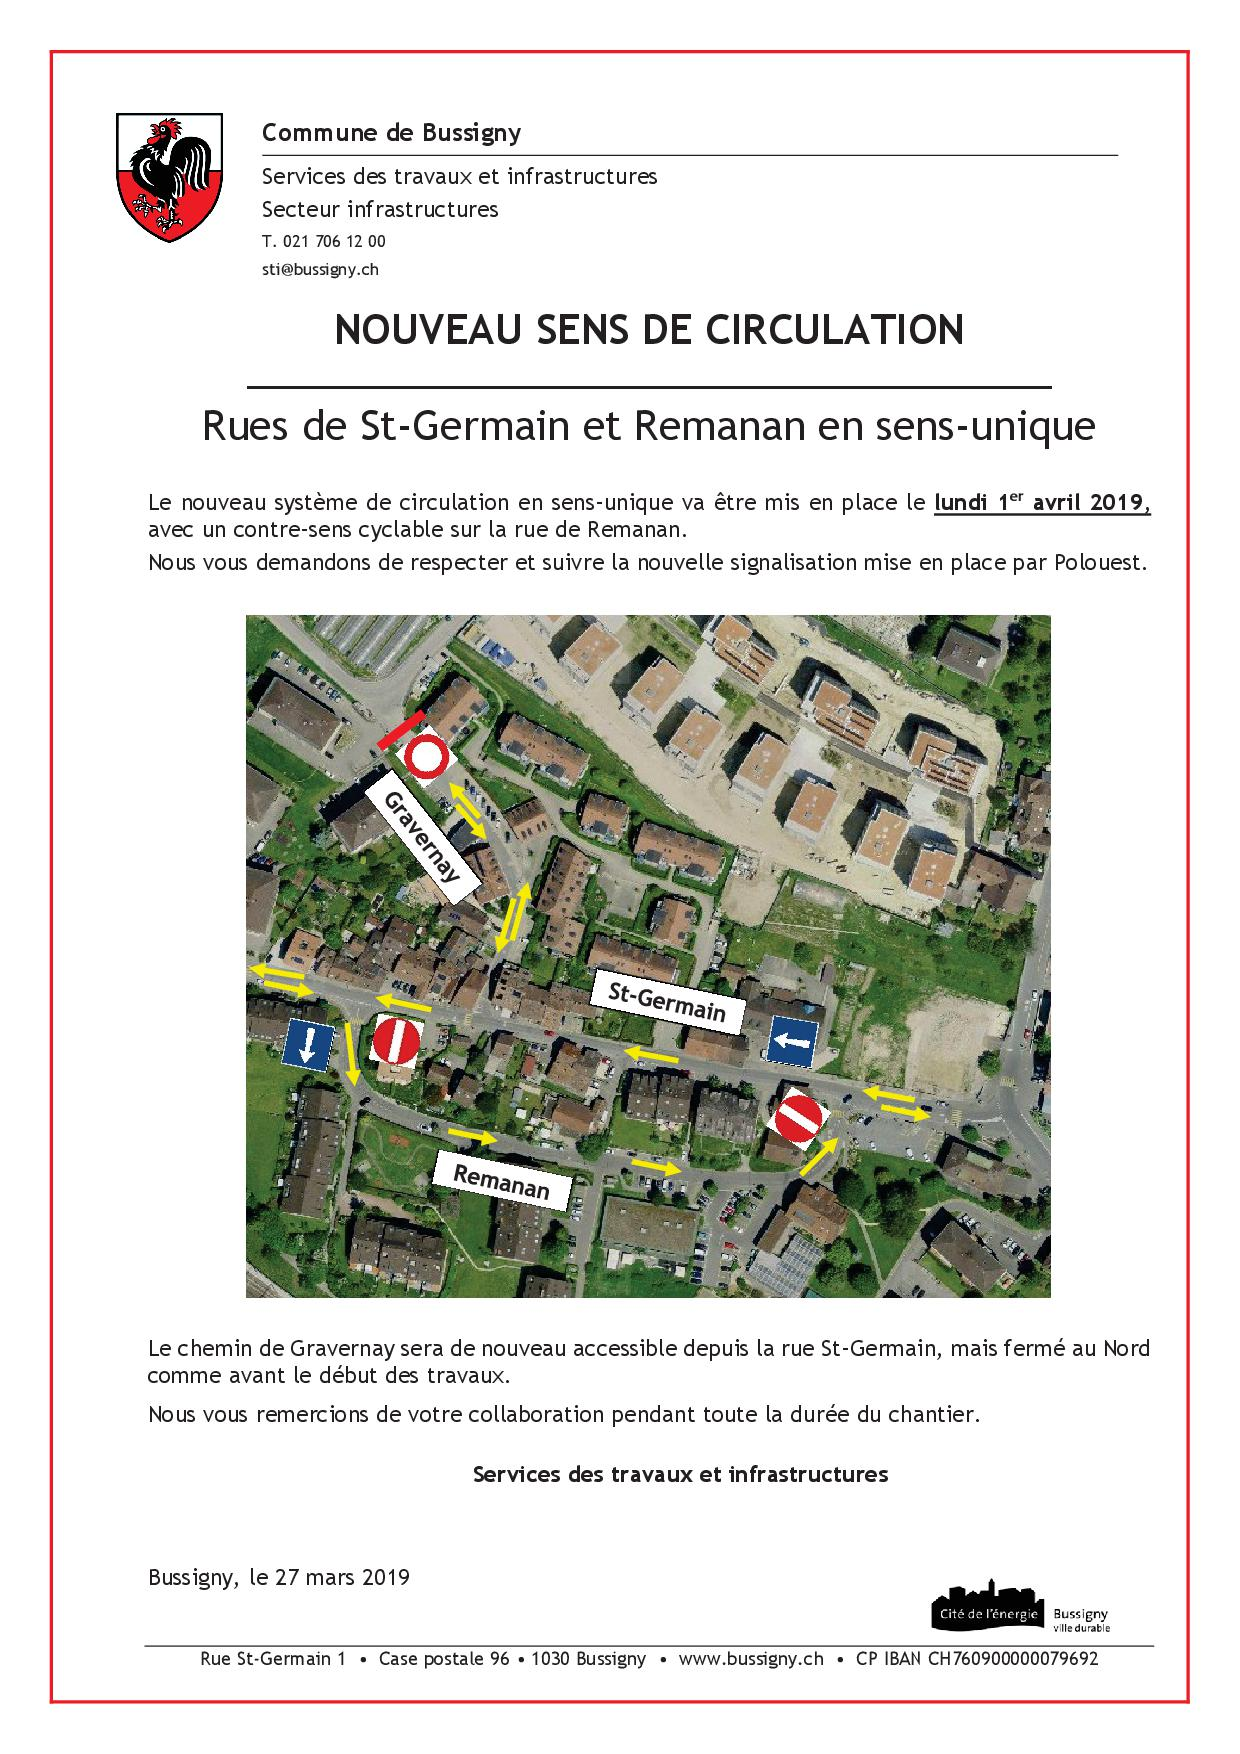 INFO 20 Travaux St Germain 2019.03.27 bijp